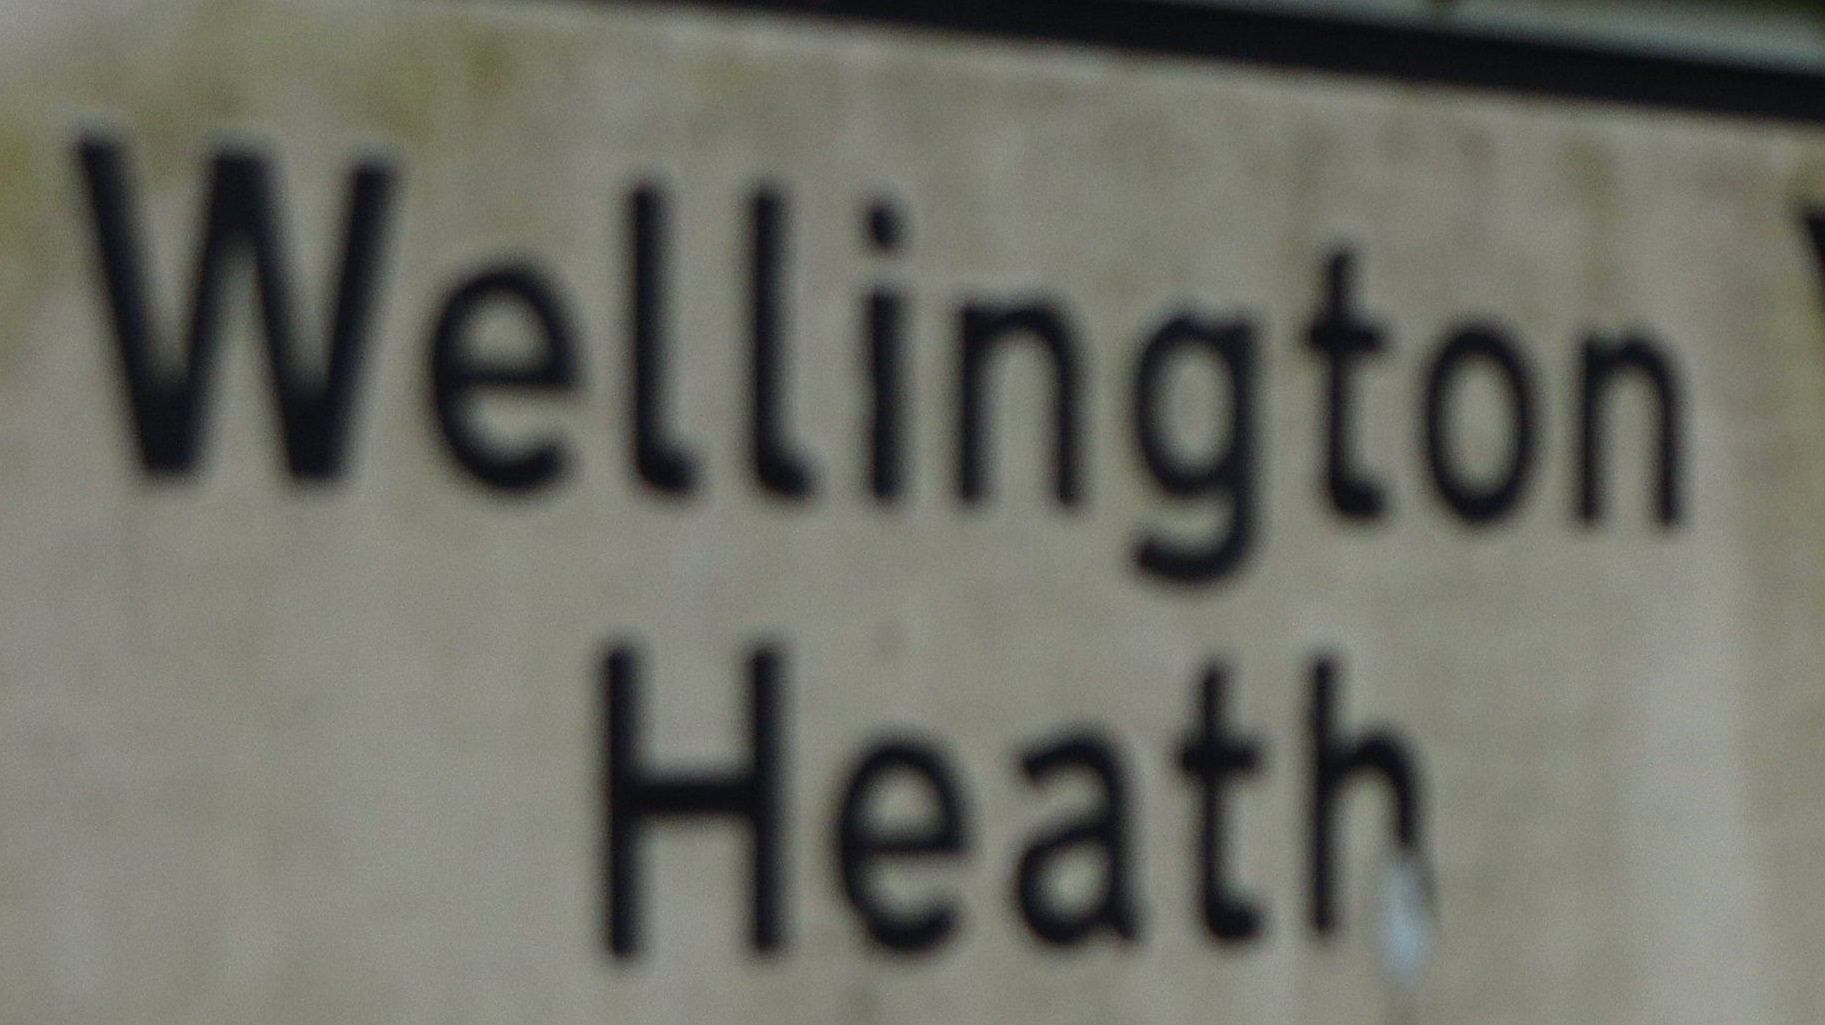 Wellington Heath